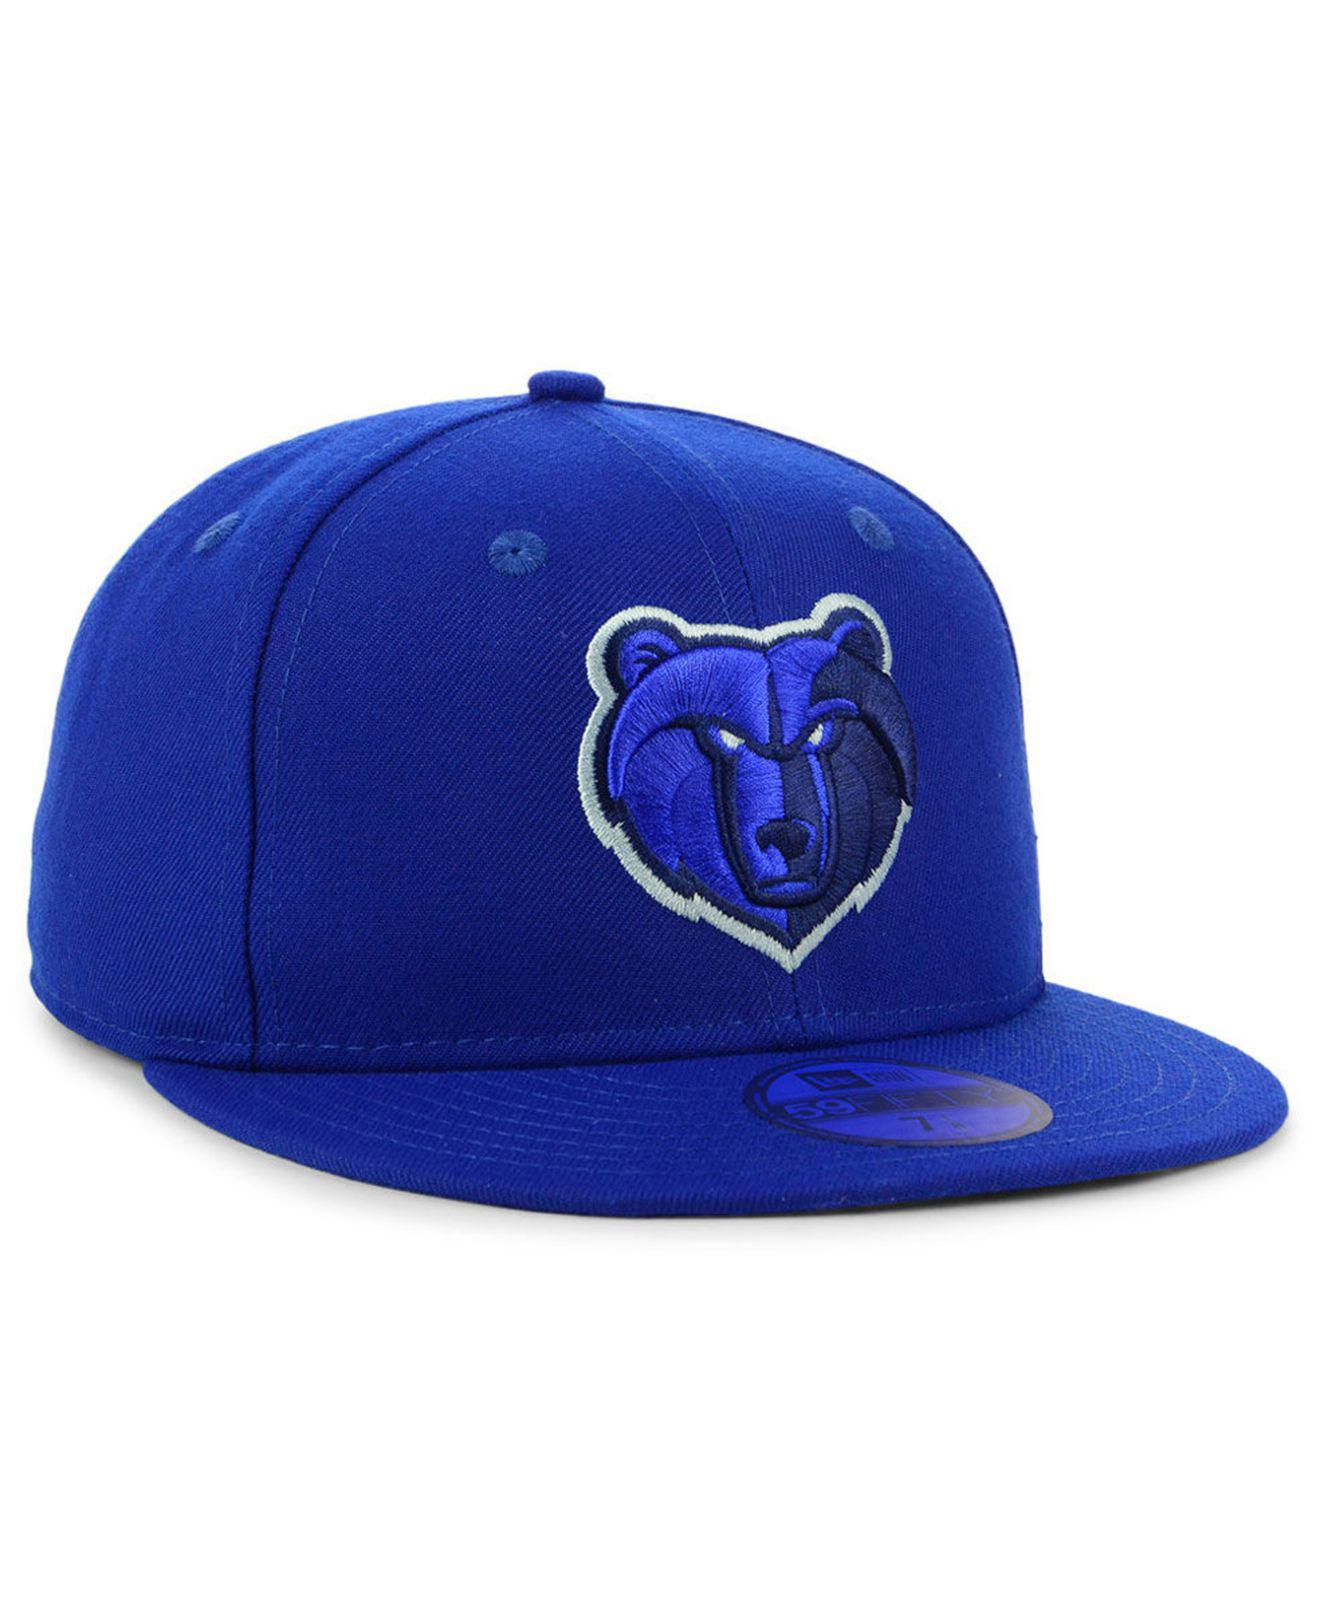 newest f24e9 40b07 ... france lyst ktz memphis grizzlies color prism pack 59fifty fitted cap  in f1999 e820f